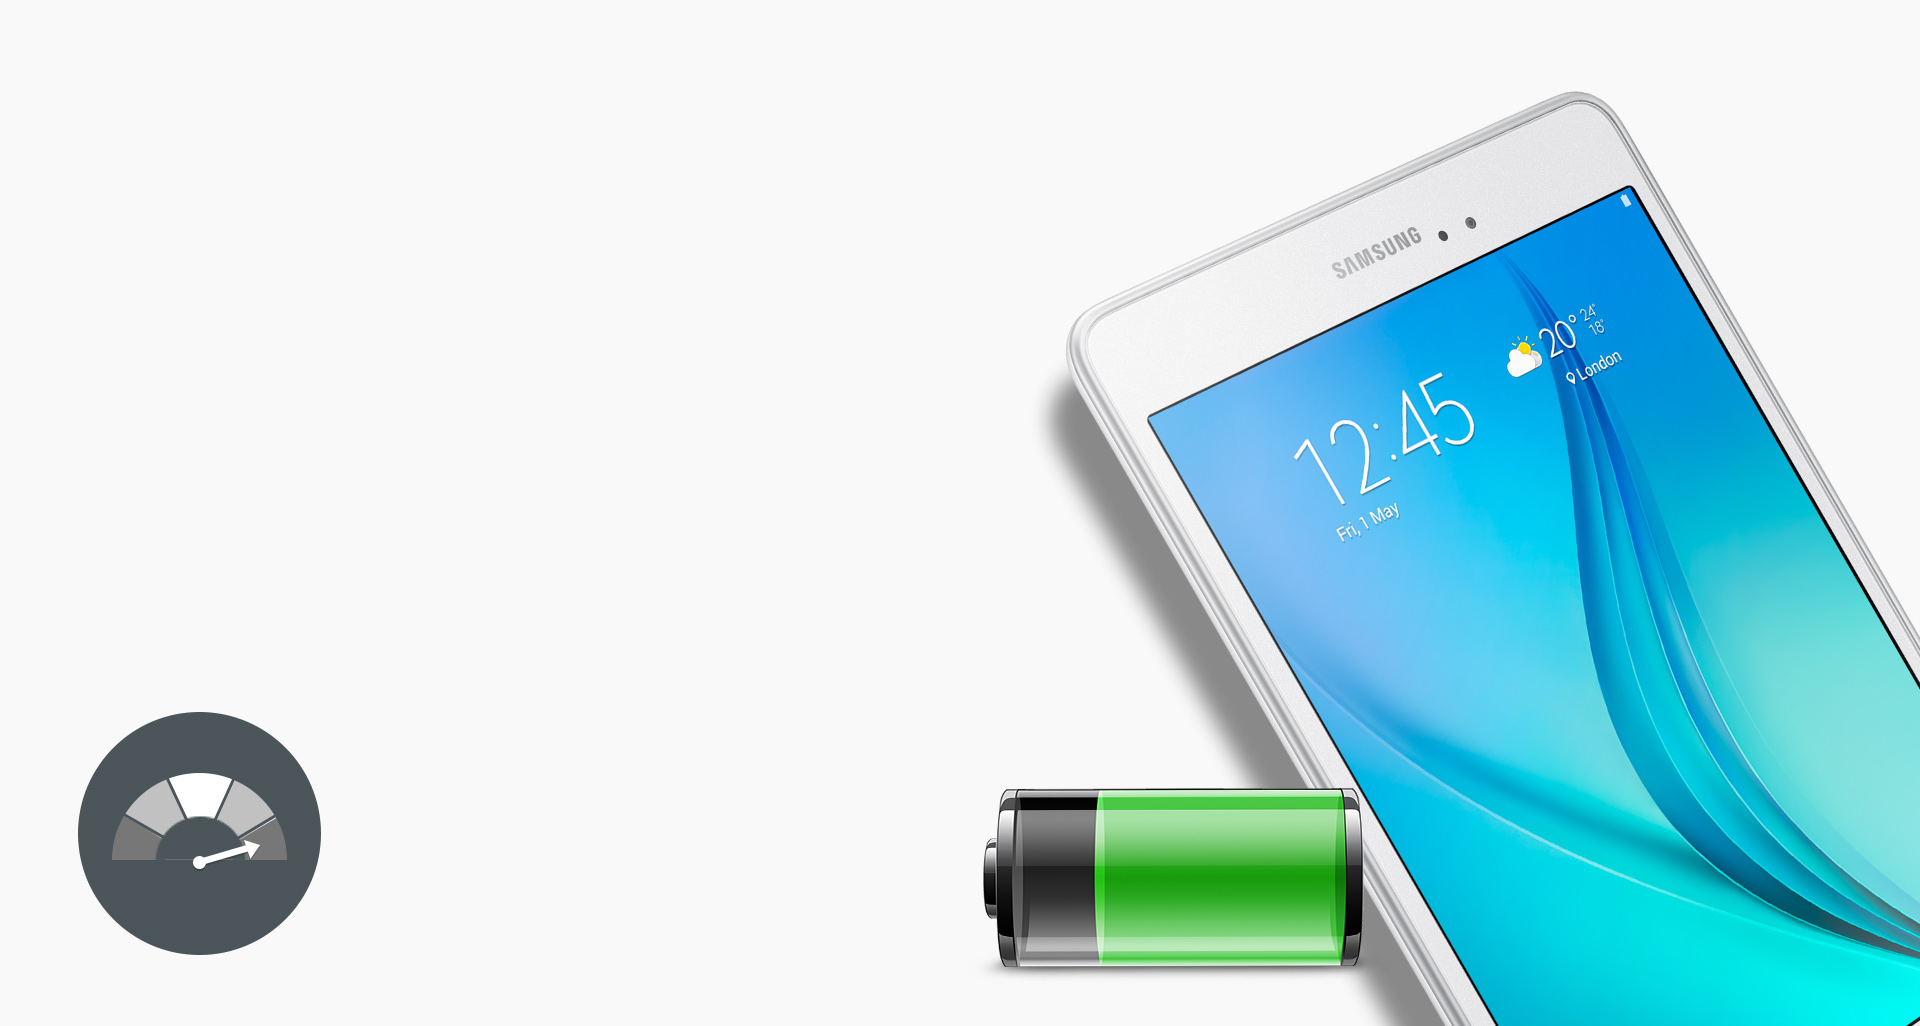 Samsung sm t350nzwaxsa galaxy tab a 80 wifi 16gb at the good guys long life battery fandeluxe Gallery